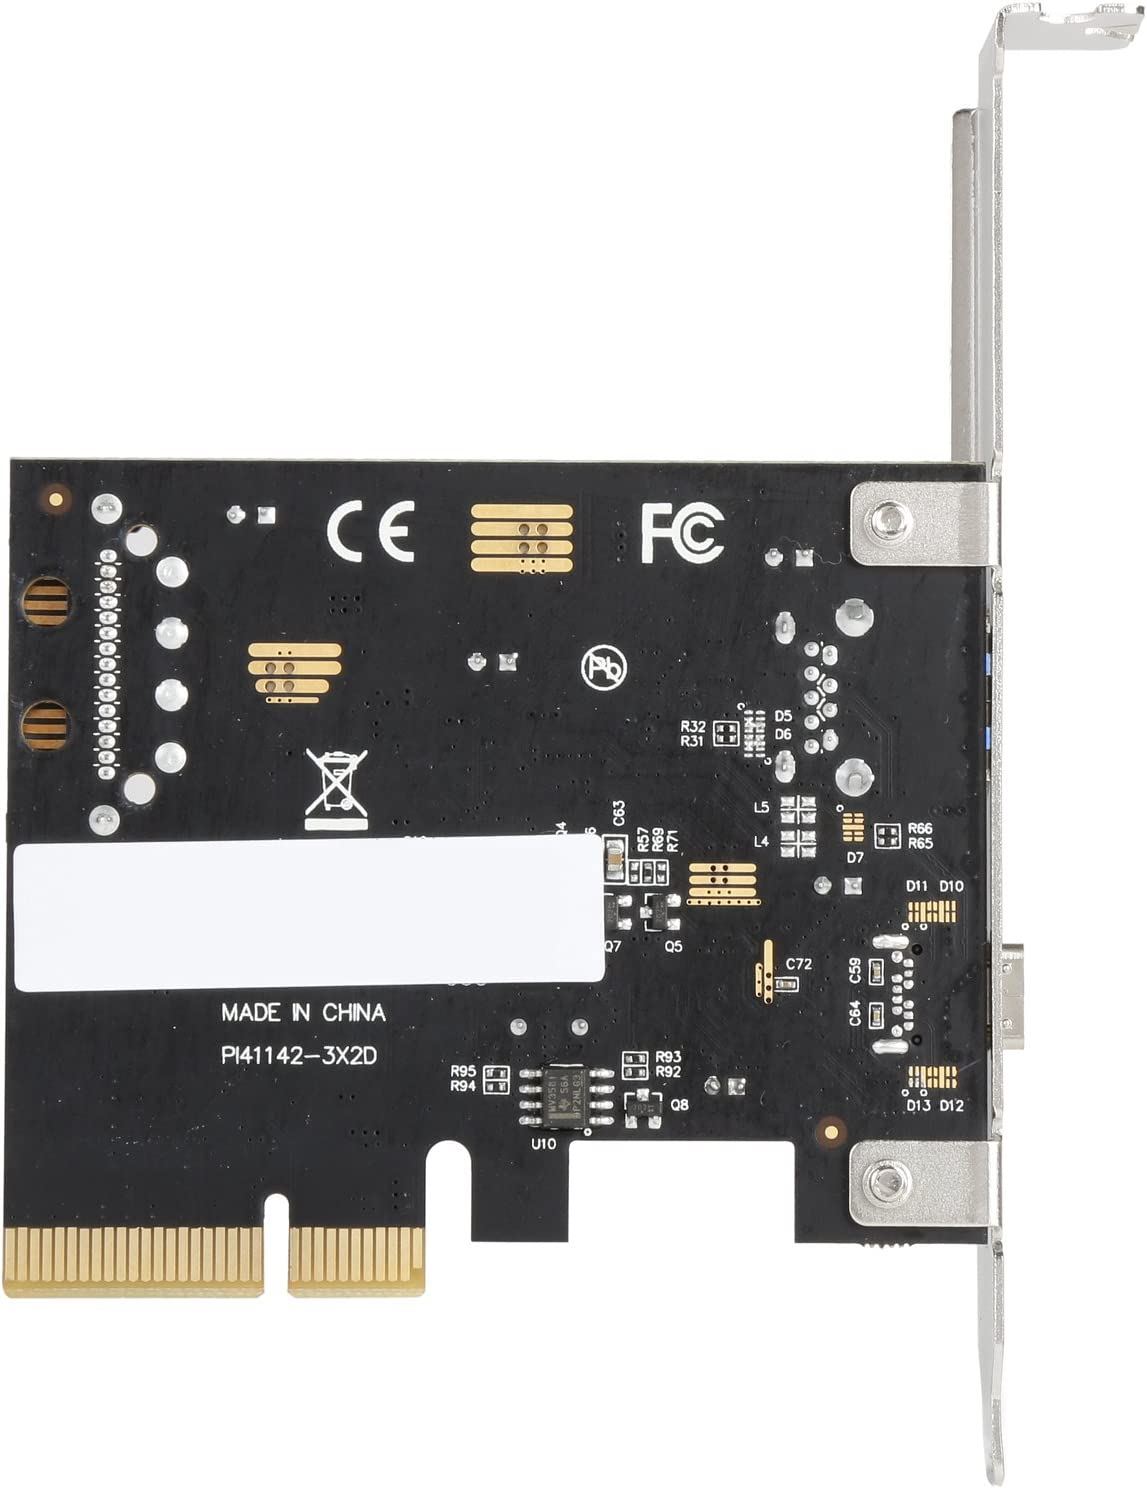 with 4 pin Male Molex Power Connector /& Renesas Chipset Super Speed Up to 5Gbps 4 USB 3.0 Ports PCIe Card Rosewill PCI-E to USB 3.0 4-Port PCI Express Expansion Card